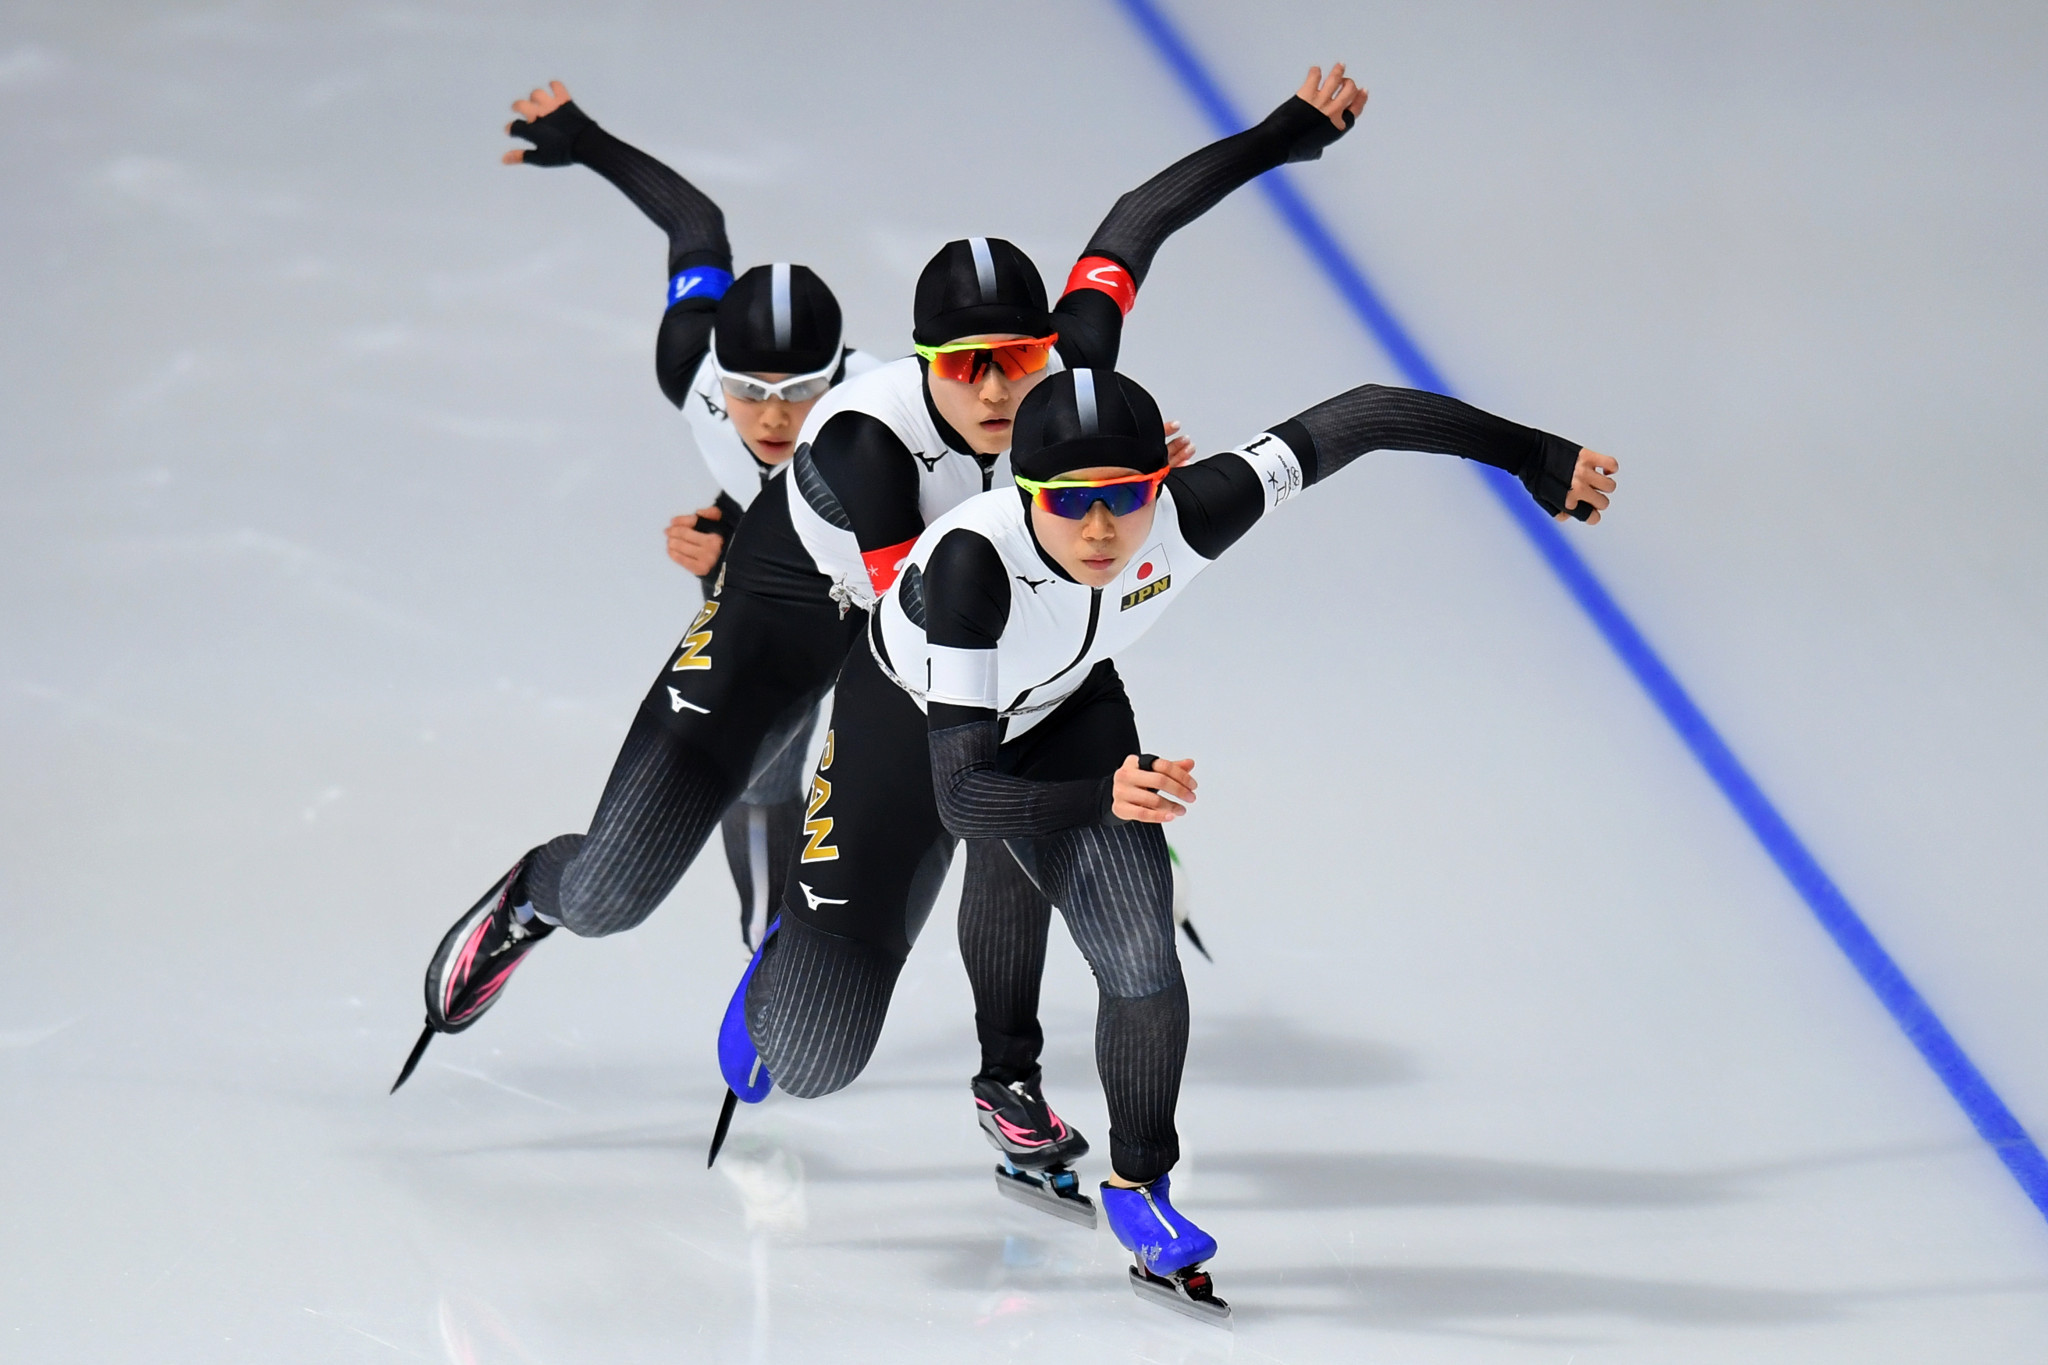 Four Continents Speed Skating Championships in Japan cancelled for COVID-19 reasons